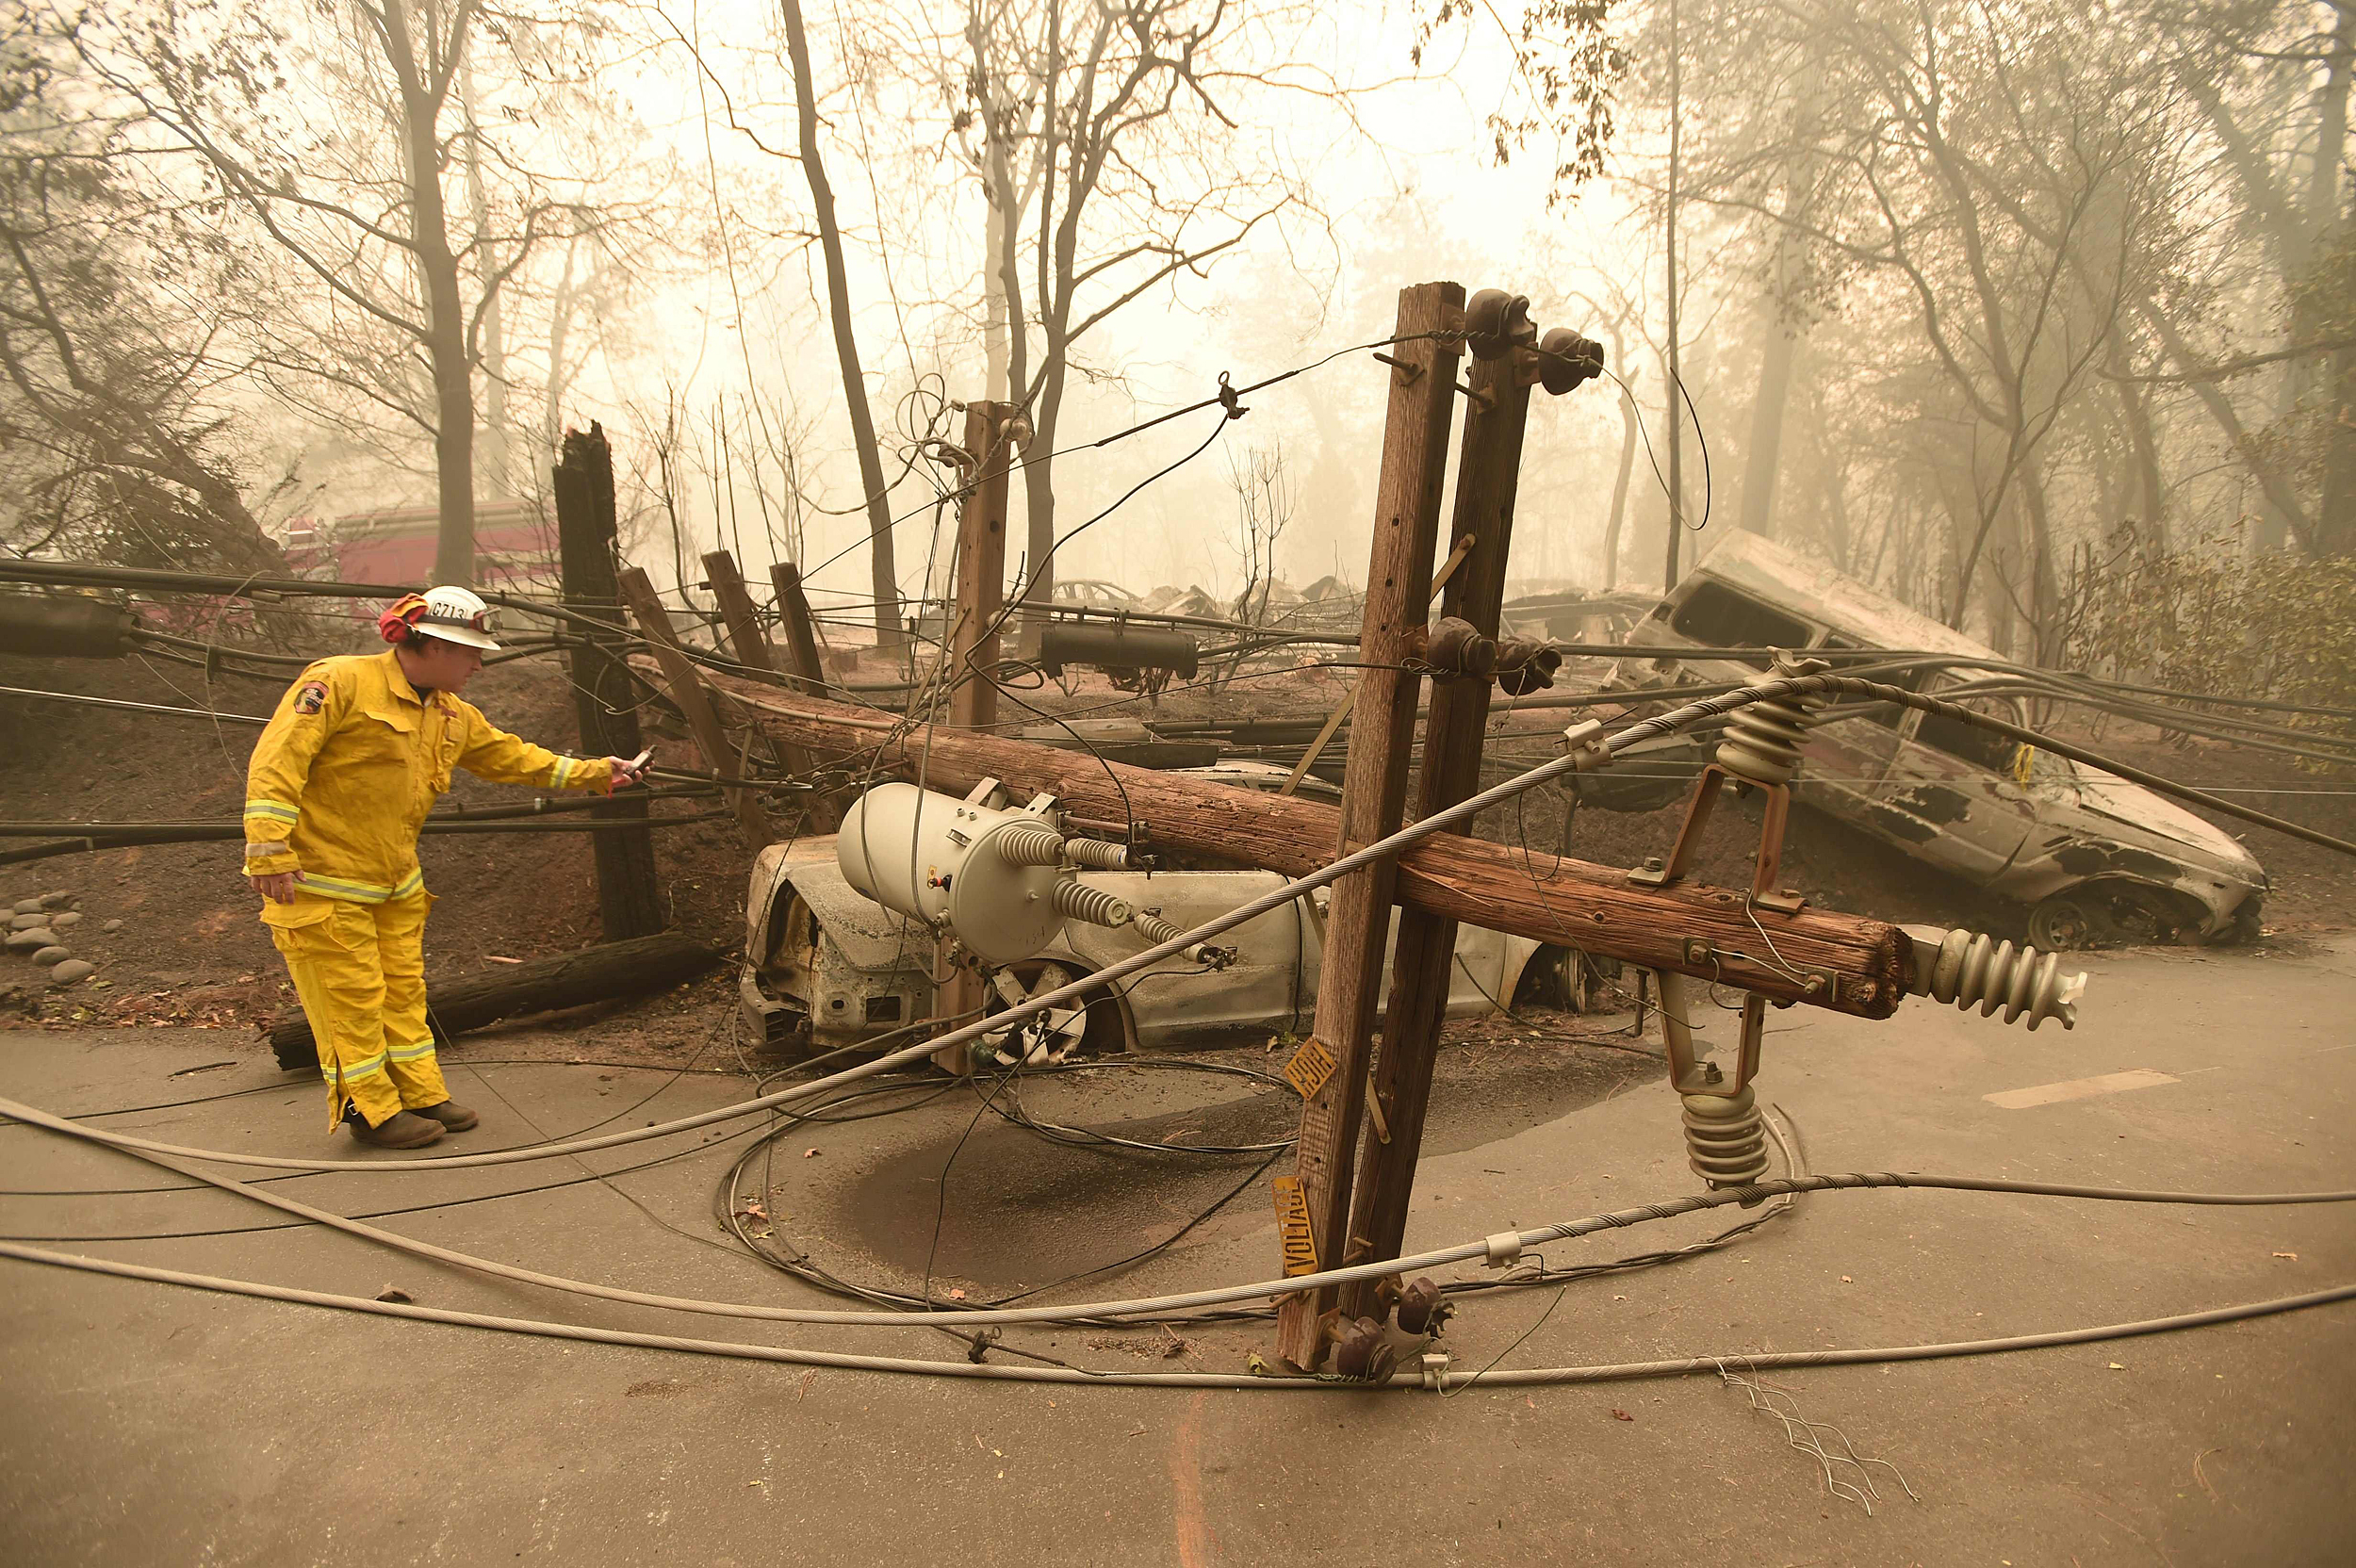 """PG&E knew about """"problems with sparks"""" that may have set off killer California wildfire"""